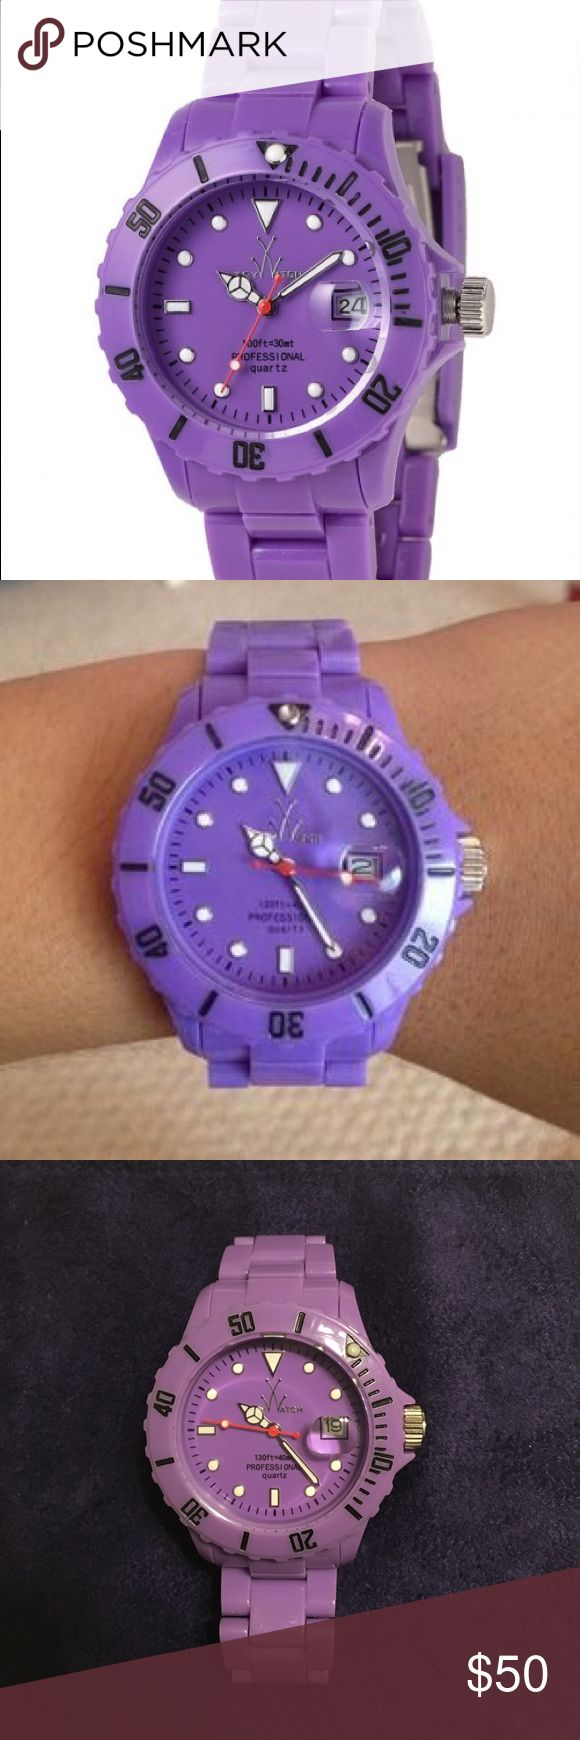 """ToyWatch Midsize Monochrome Watch MO13VL Jazz up your jewelry collection with this fun purple monochrome ToyWatch!  Plasteramic case and bracelet. Magnified date display.  40m water resistance.   39mm case. Super fun 💜 measures 6"""" if I find the additional links, I will include them. Needs battery replacement. ToyWatch Accessories Watches"""